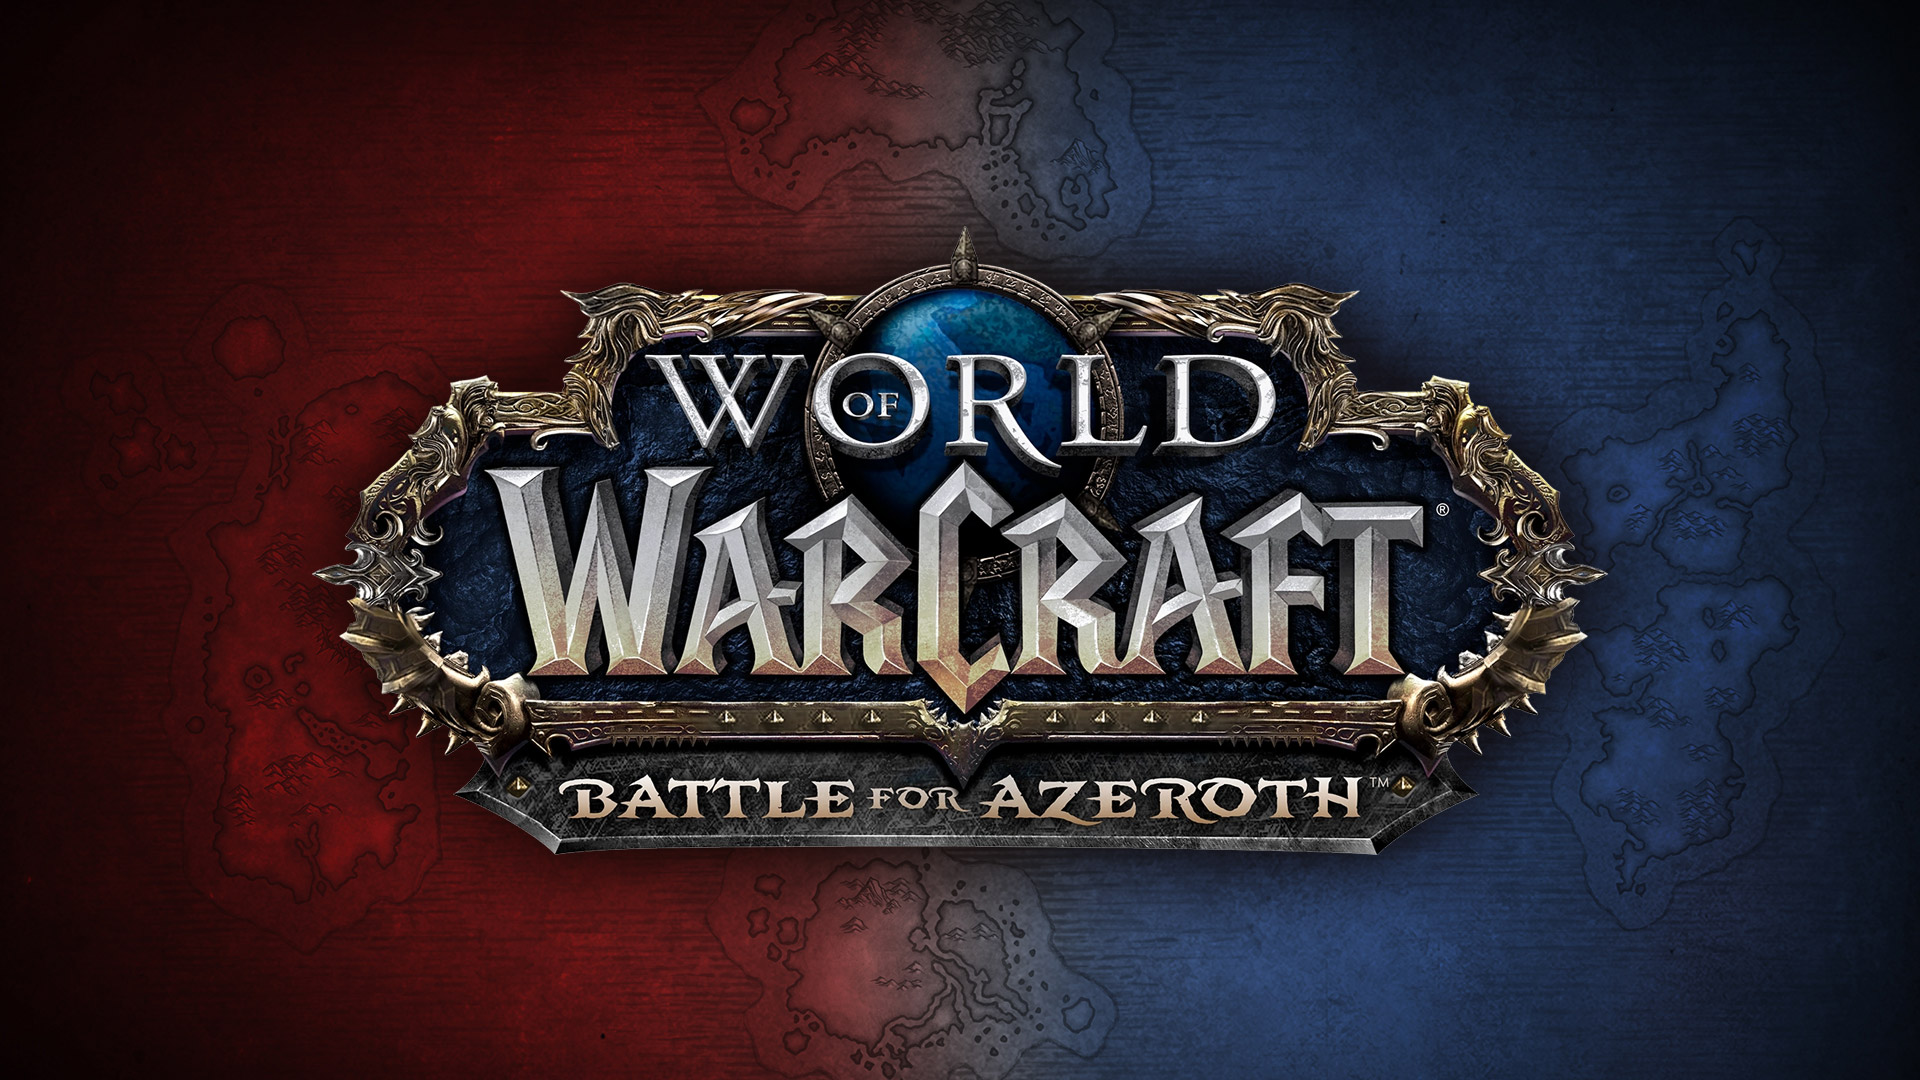 Battle for Azeroth sort ce mardi 14 août à 00h01